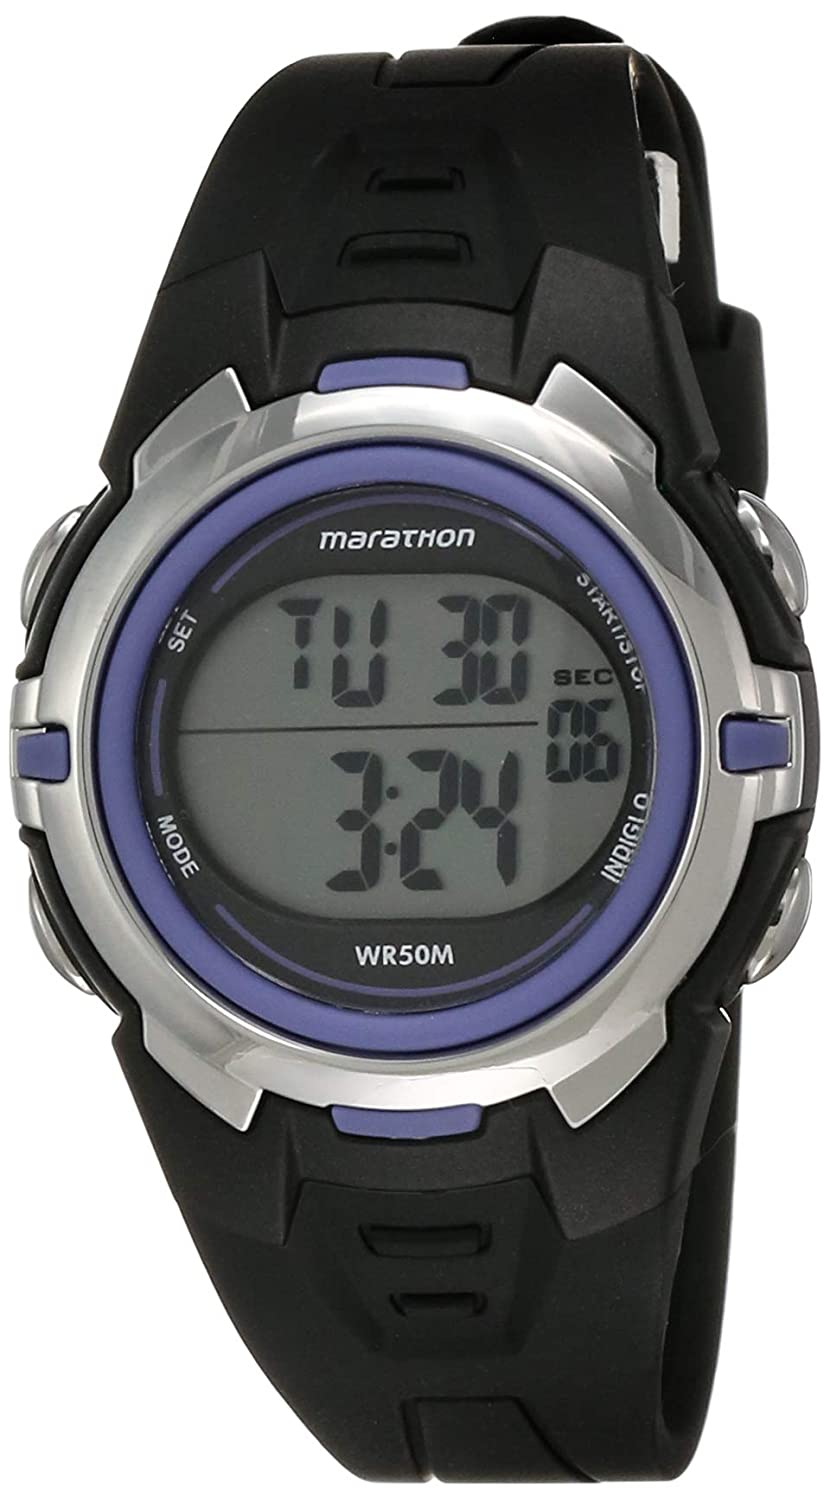 Marathon By Best Timex Watches Price Below 1000 Rs for men in India